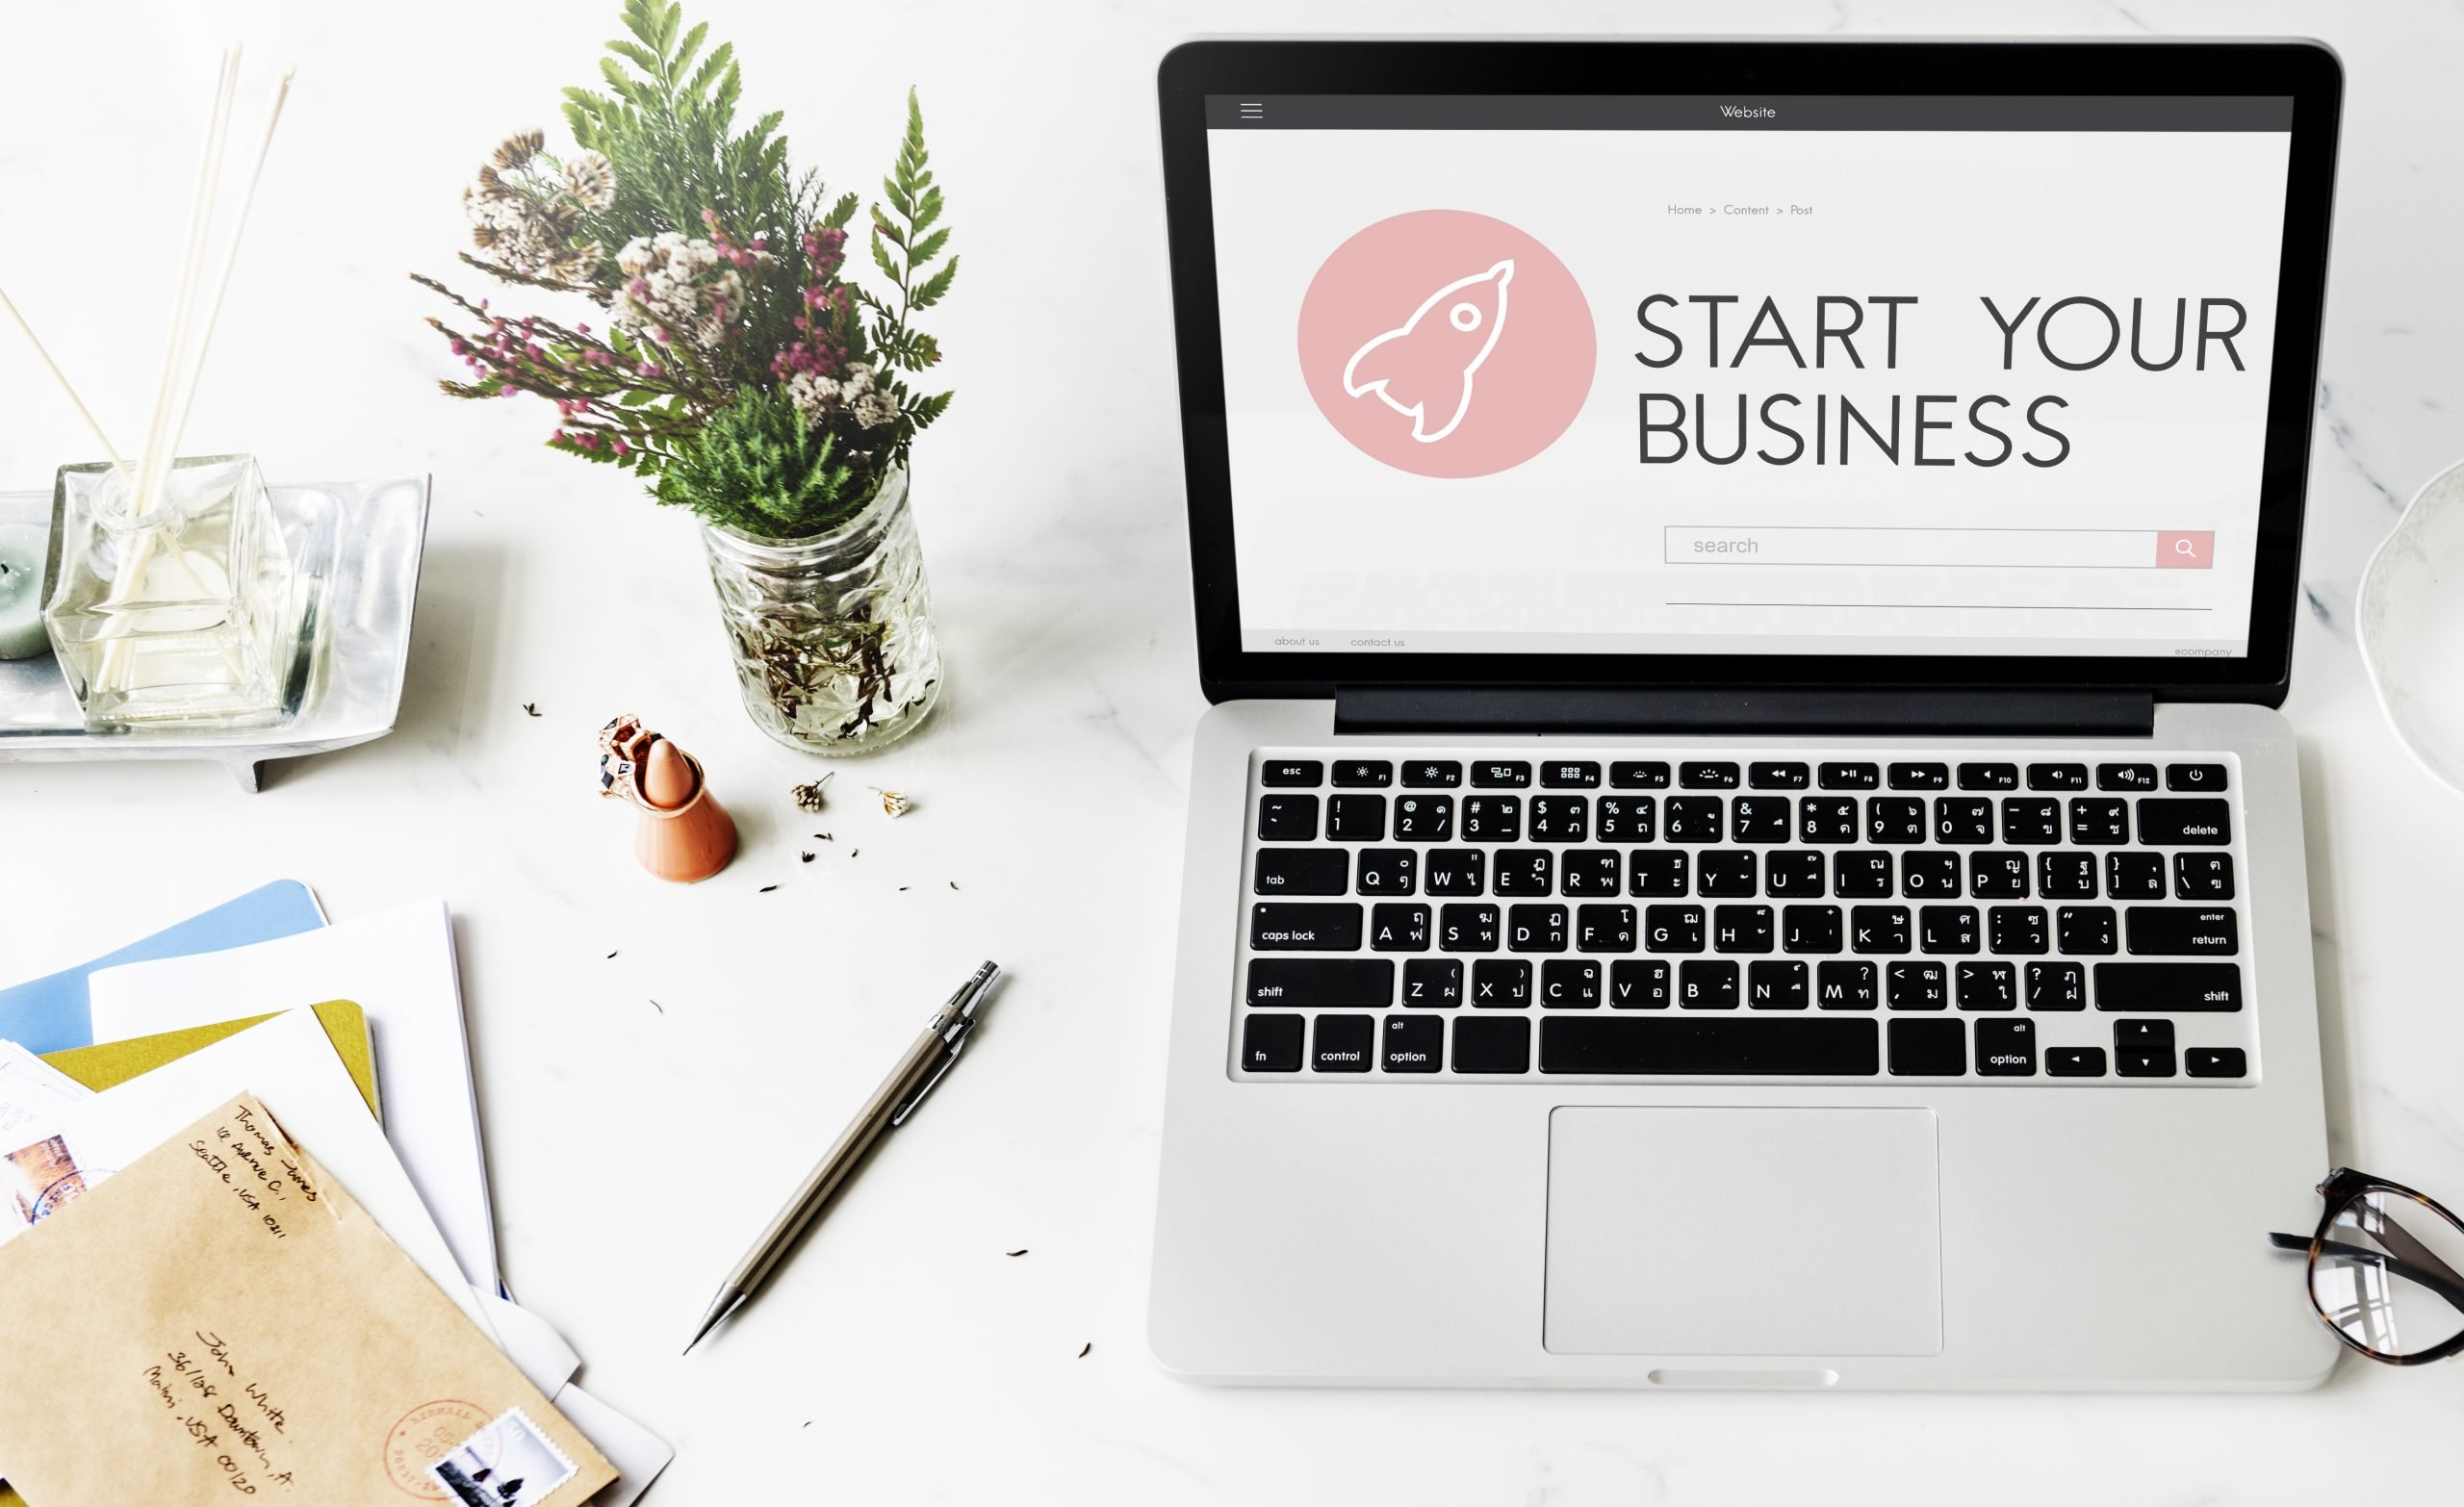 Startup Business Launch Concept